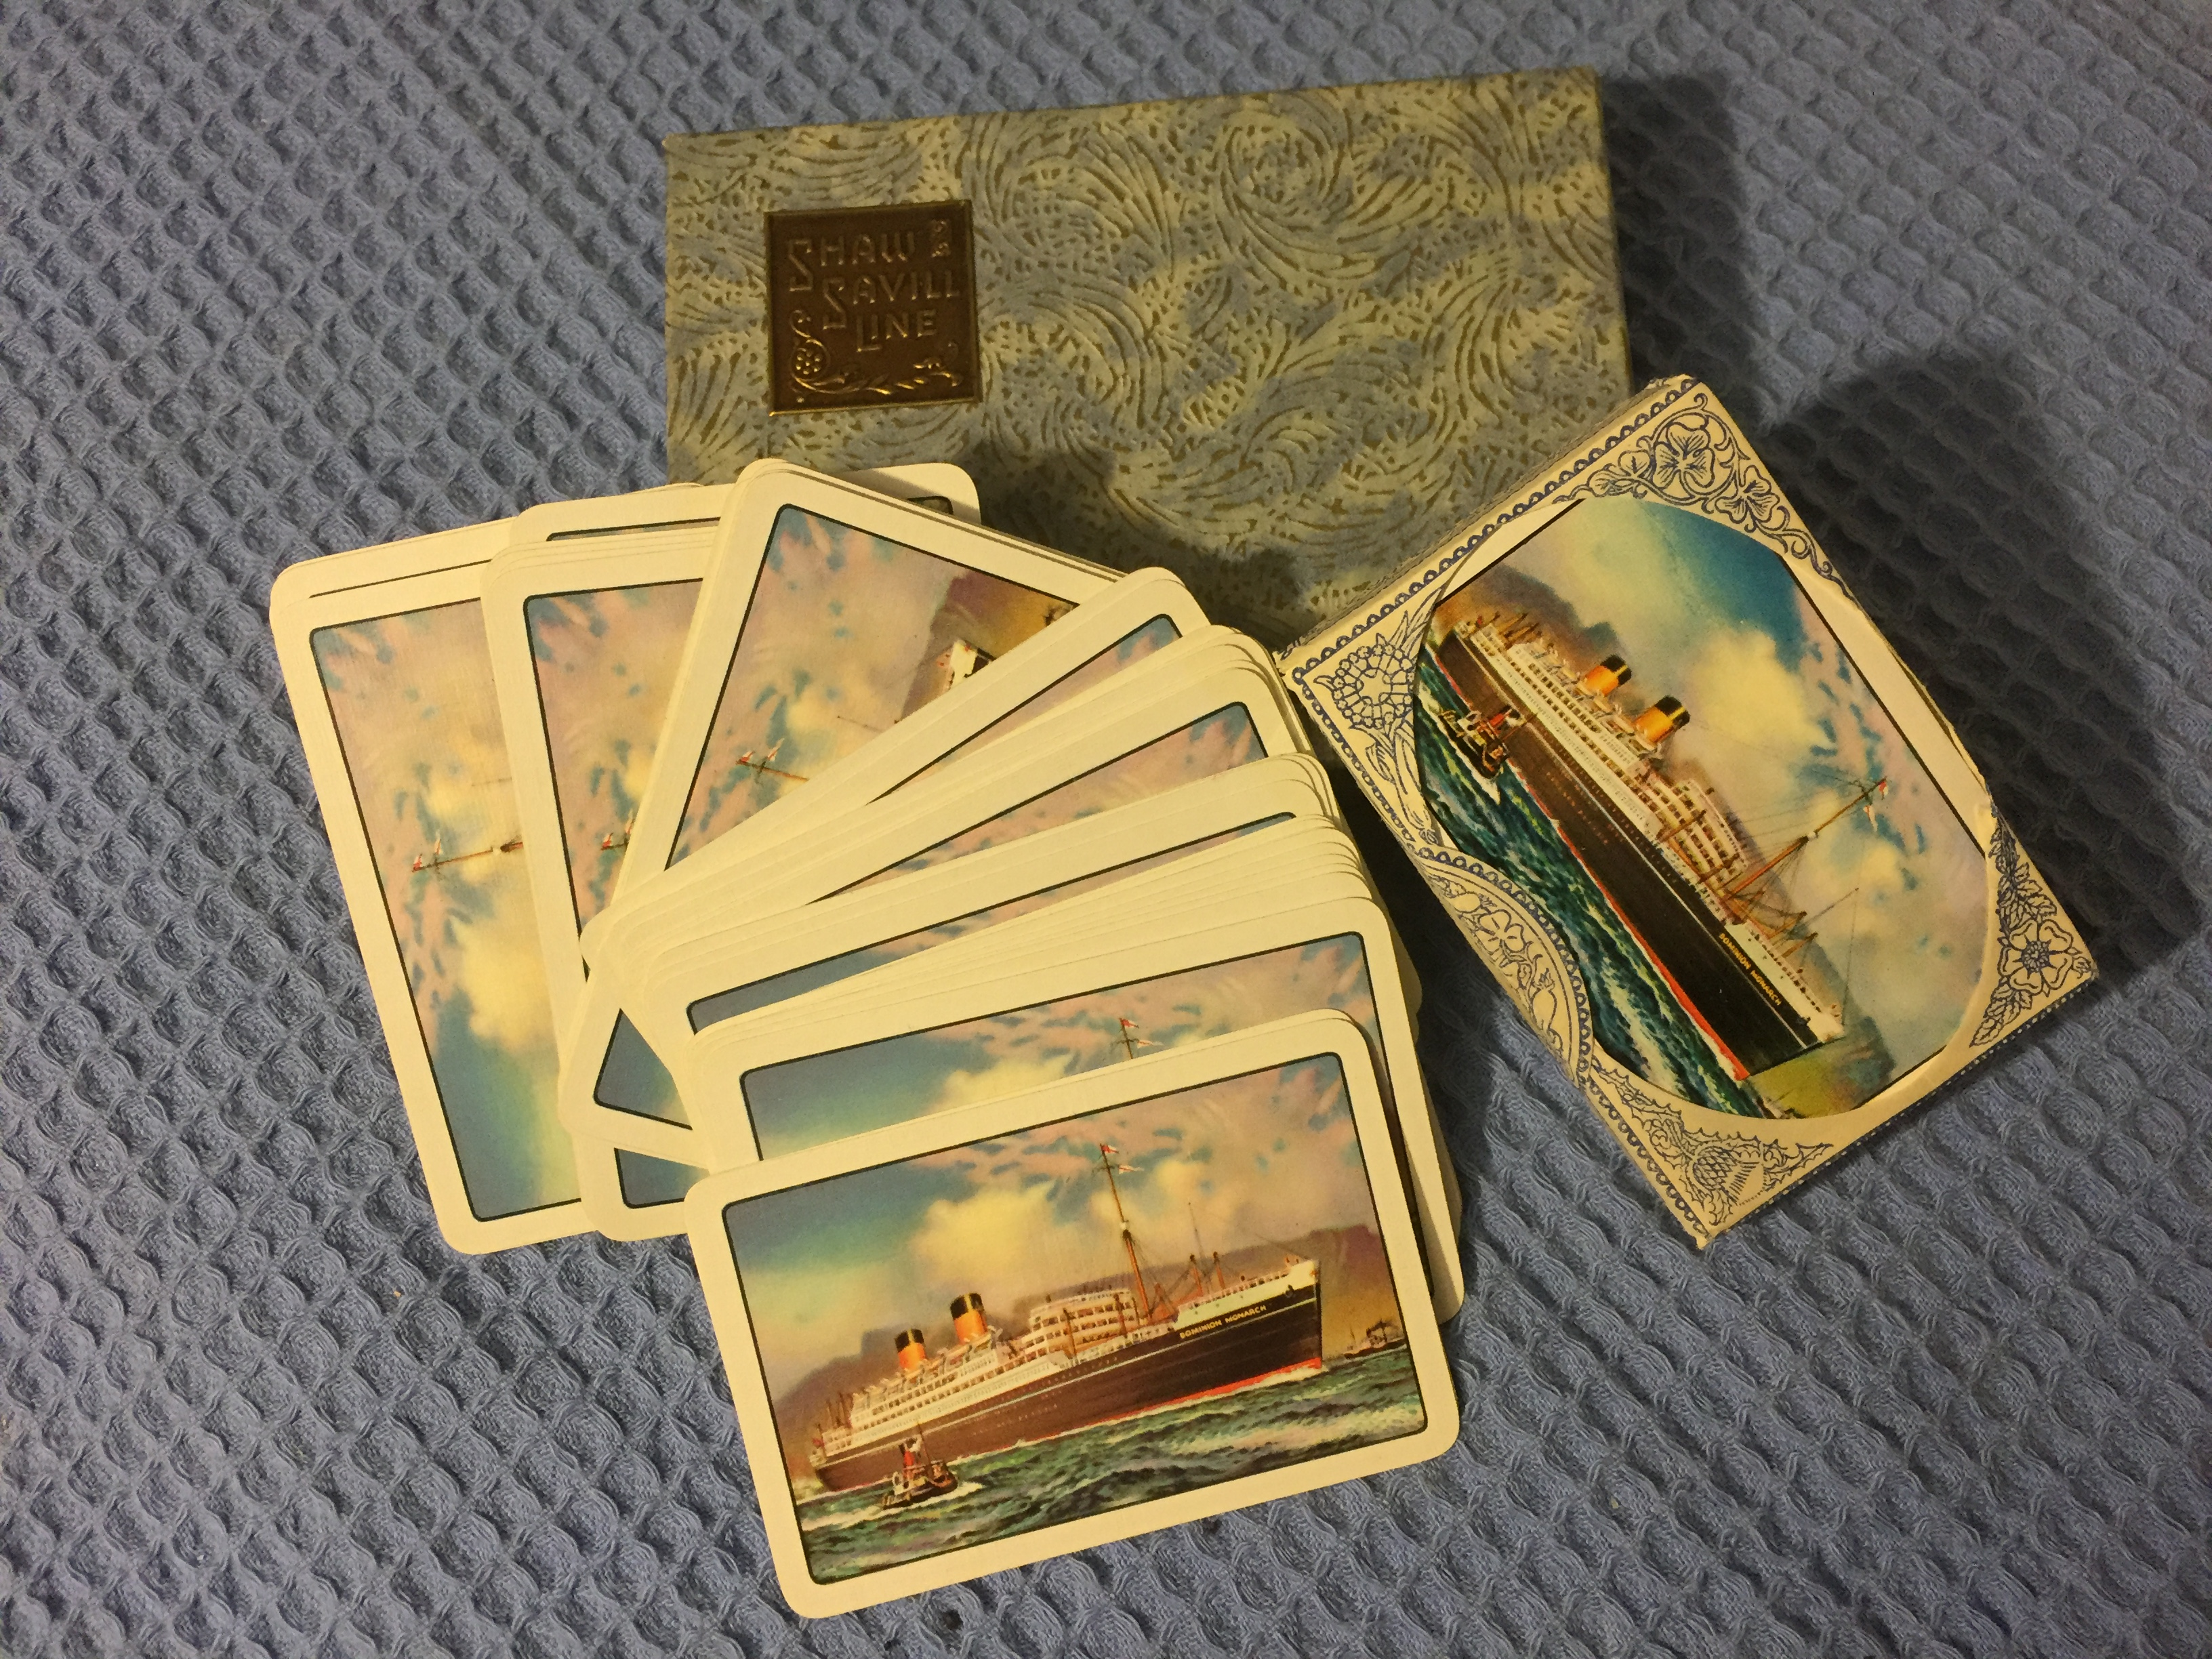 SUPERB DOUBLE SET OF PLAYING CARDS FROM THE SHAW SAVILL  LINE IN ORIGINAL PRESENTATION BOX